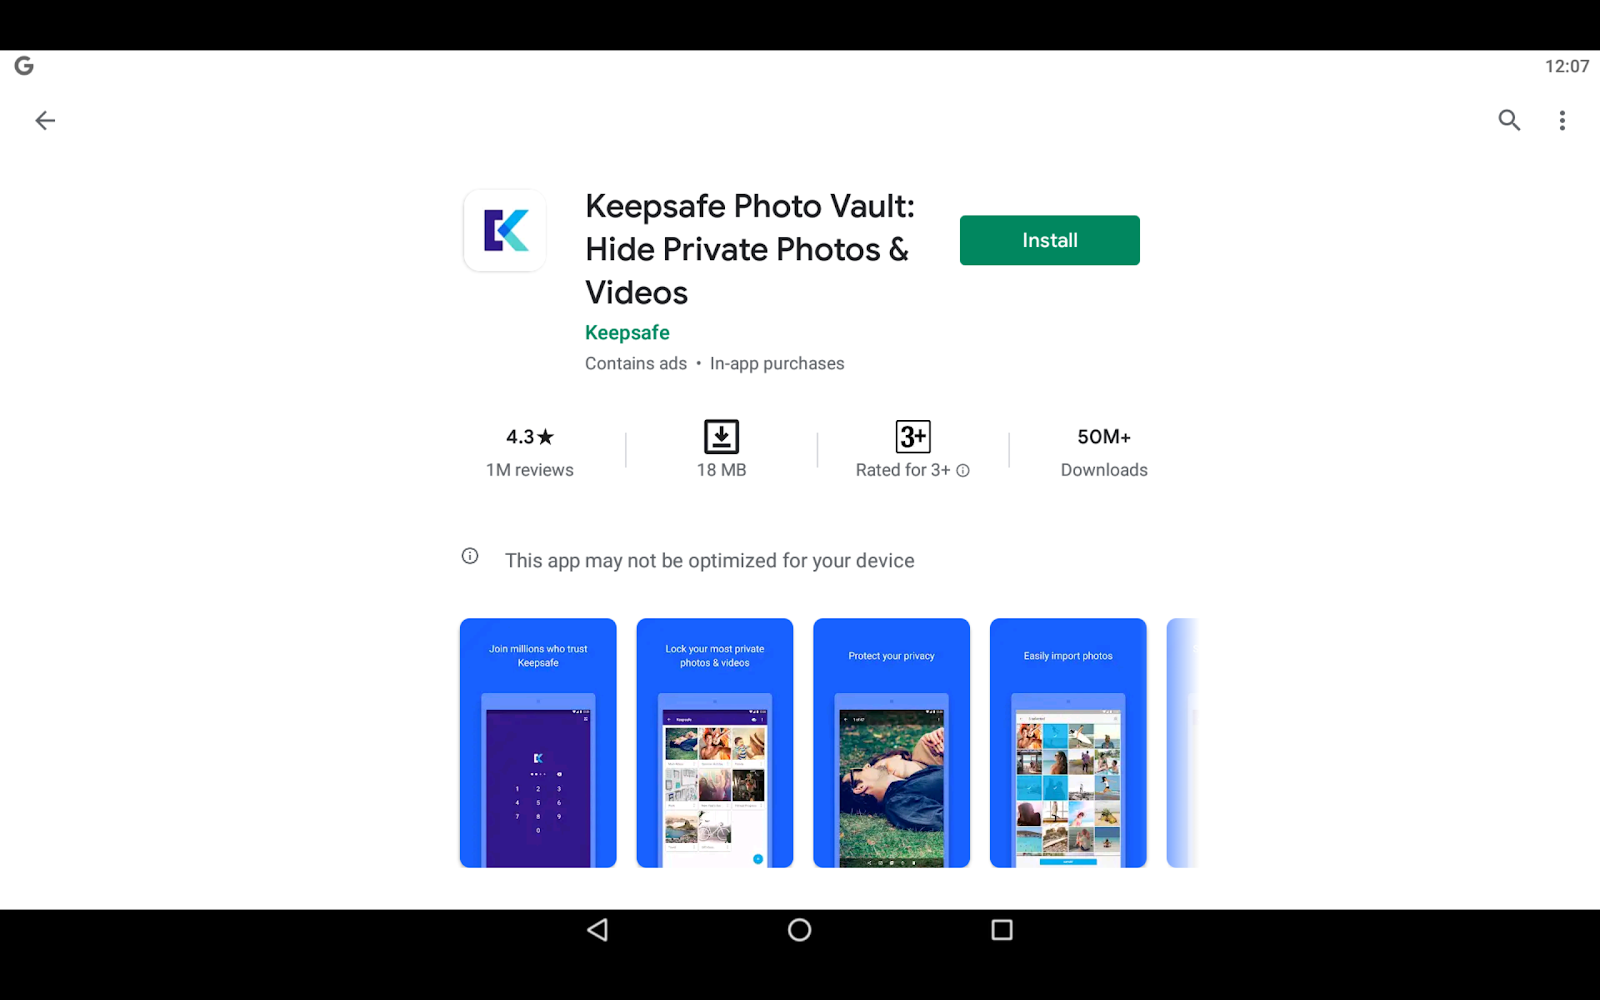 Keepsafe app via BlueStacks